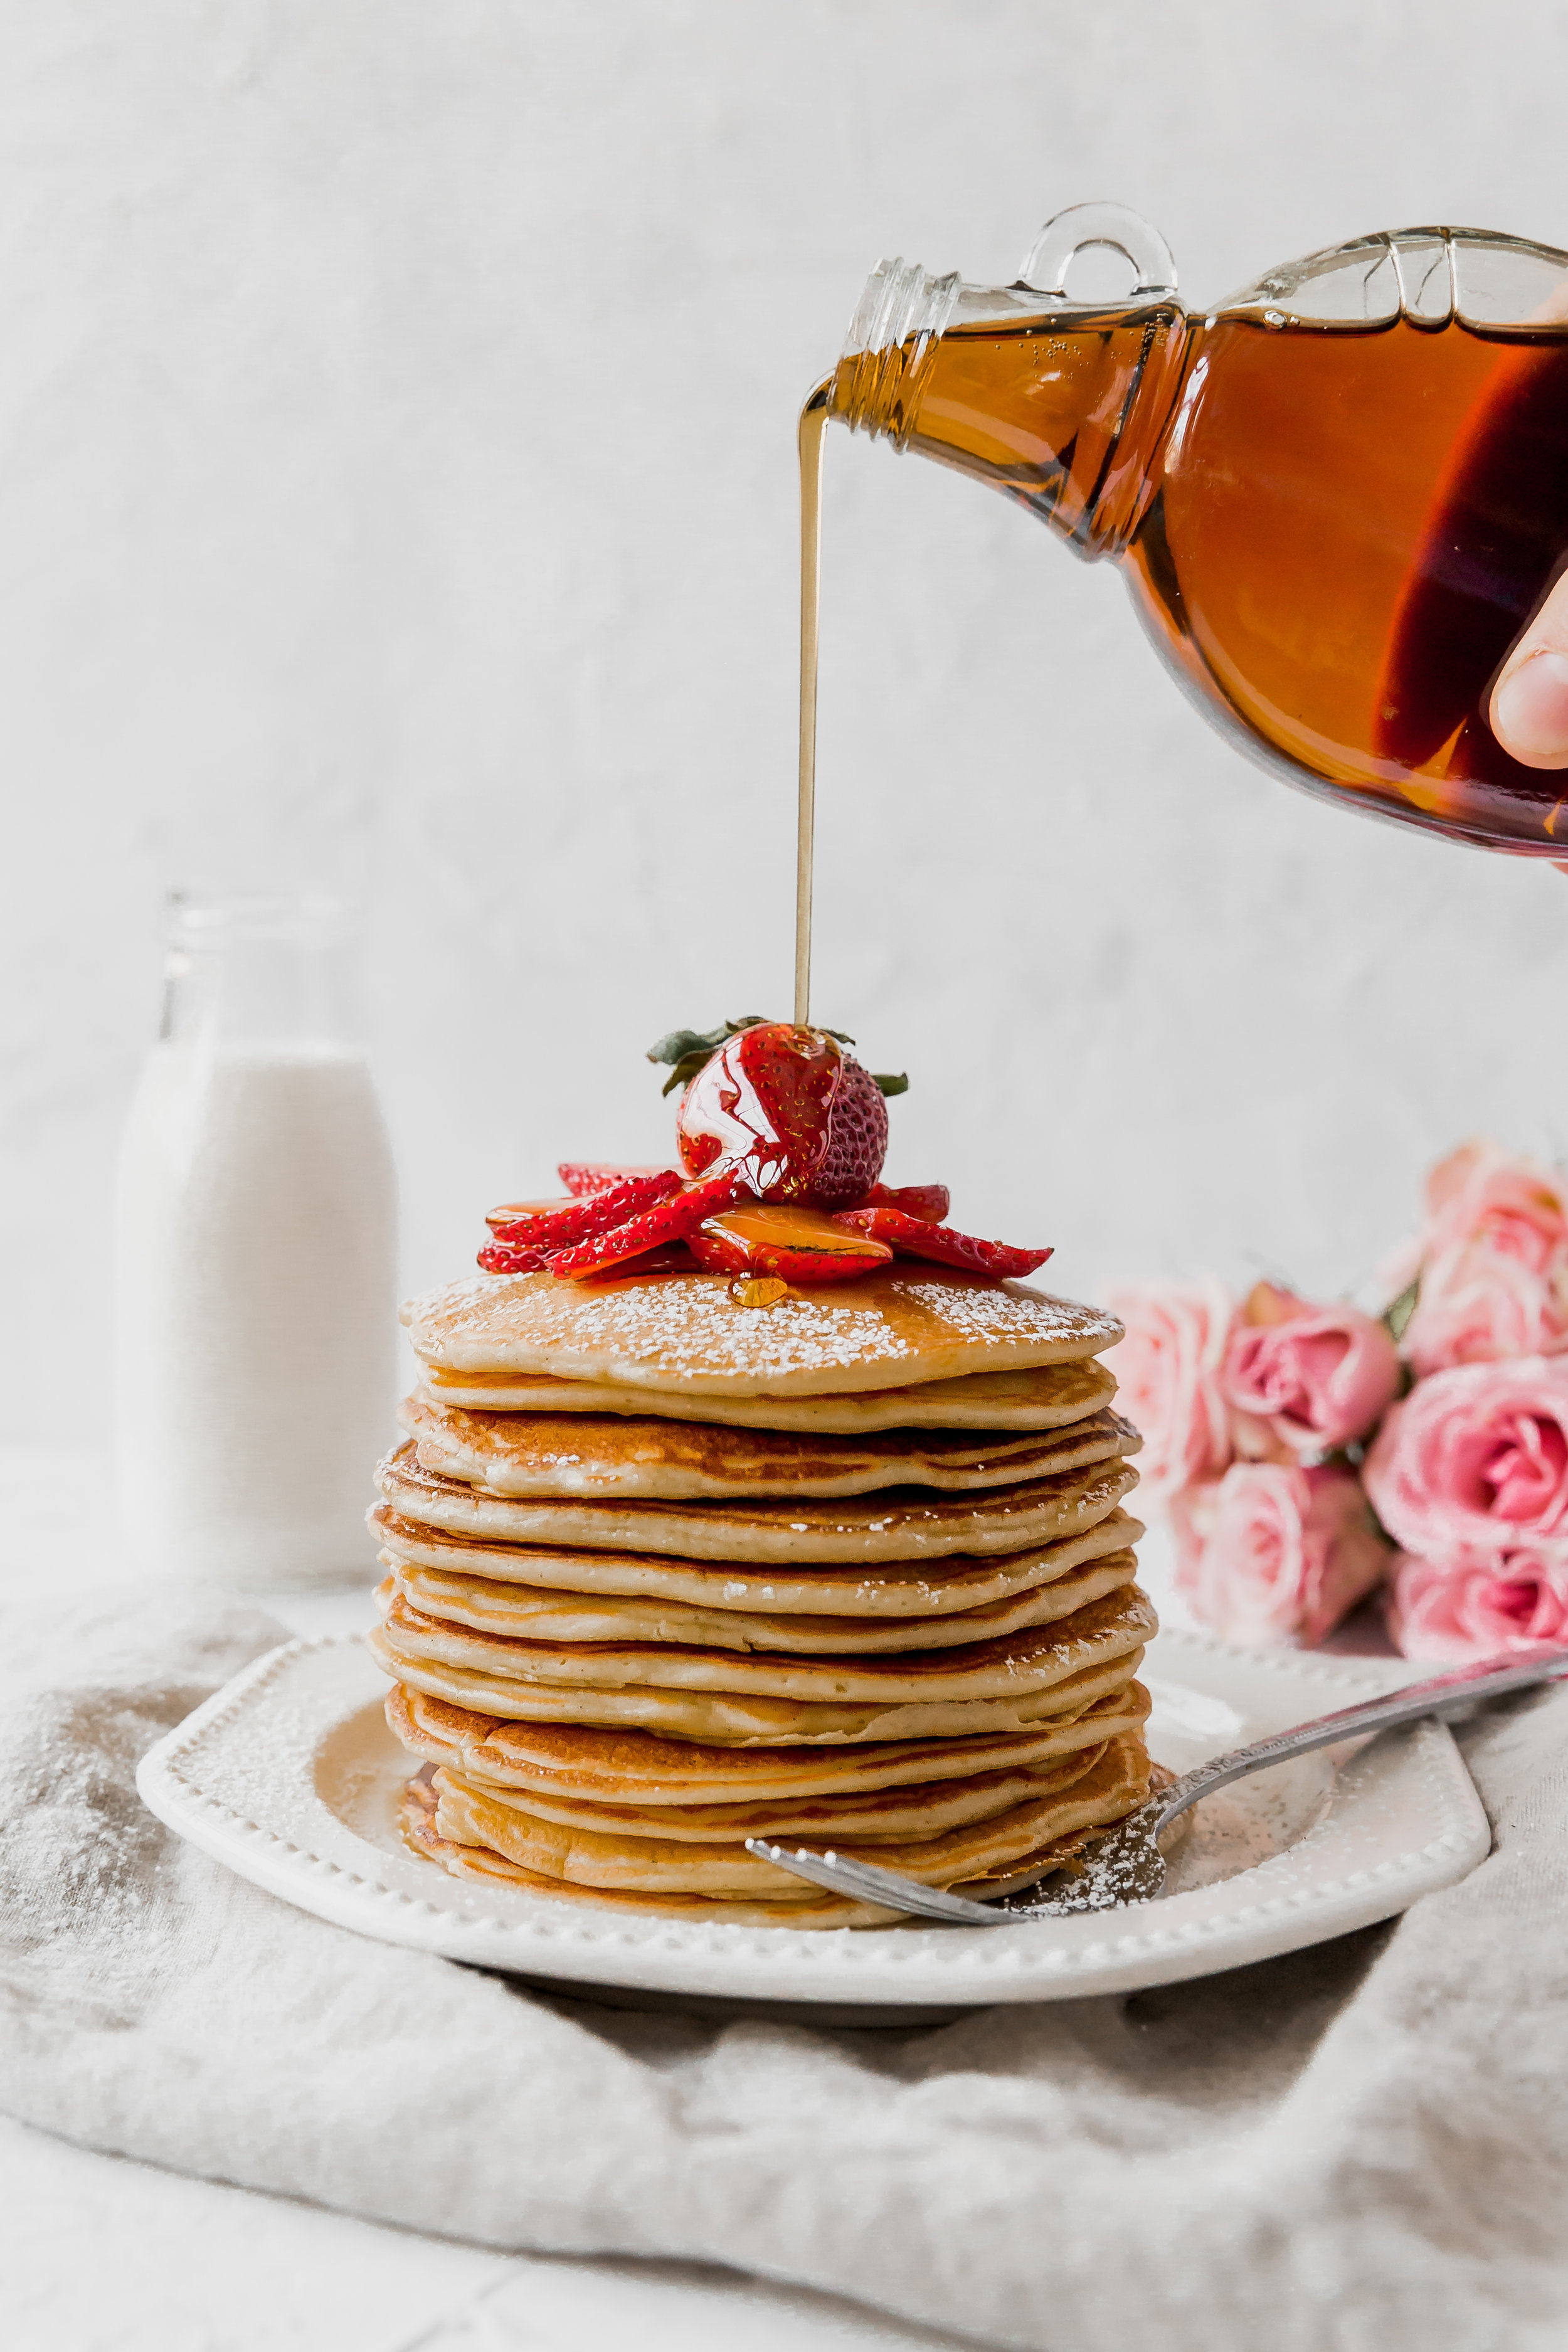 Crème Fraîche Pancakes || To Salt & See. The most perfectly delicious pancakes ever! The crème fraîche adds a rich and creamy flavor to these pancakes. This recipe makes for a wonderful breakfast in bed with that special someone, or with all your gal pals at a Galentine's brunch!